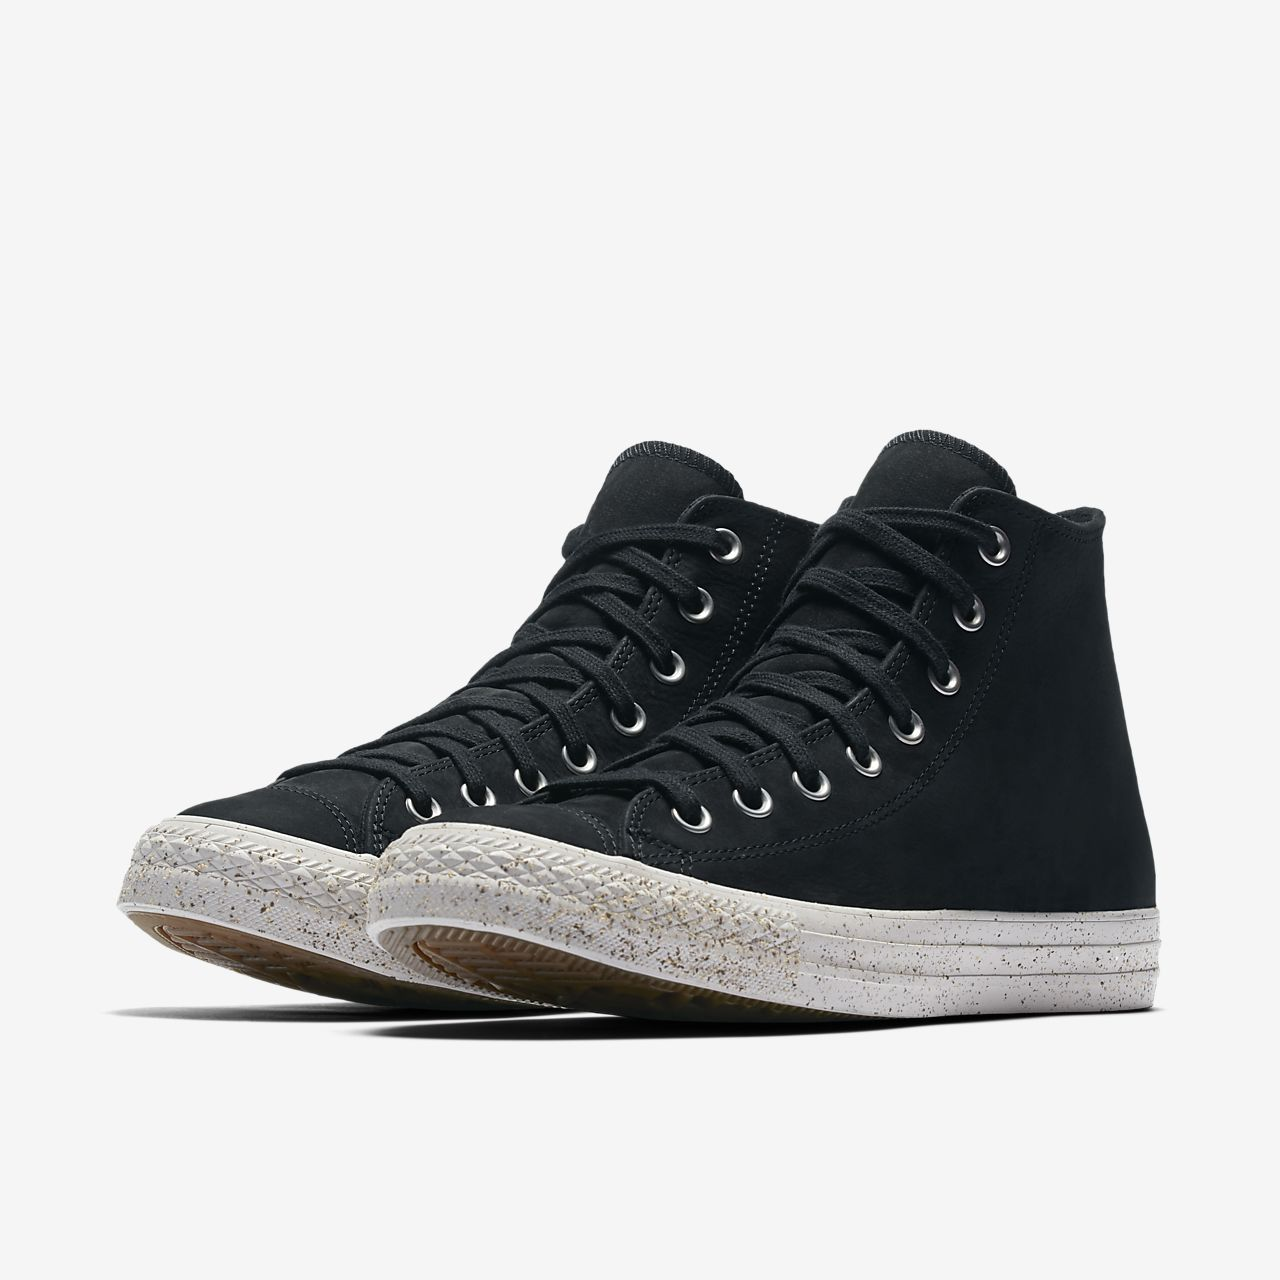 CHUCK TAYLOR ALL STAR HI NUBUCKConverse